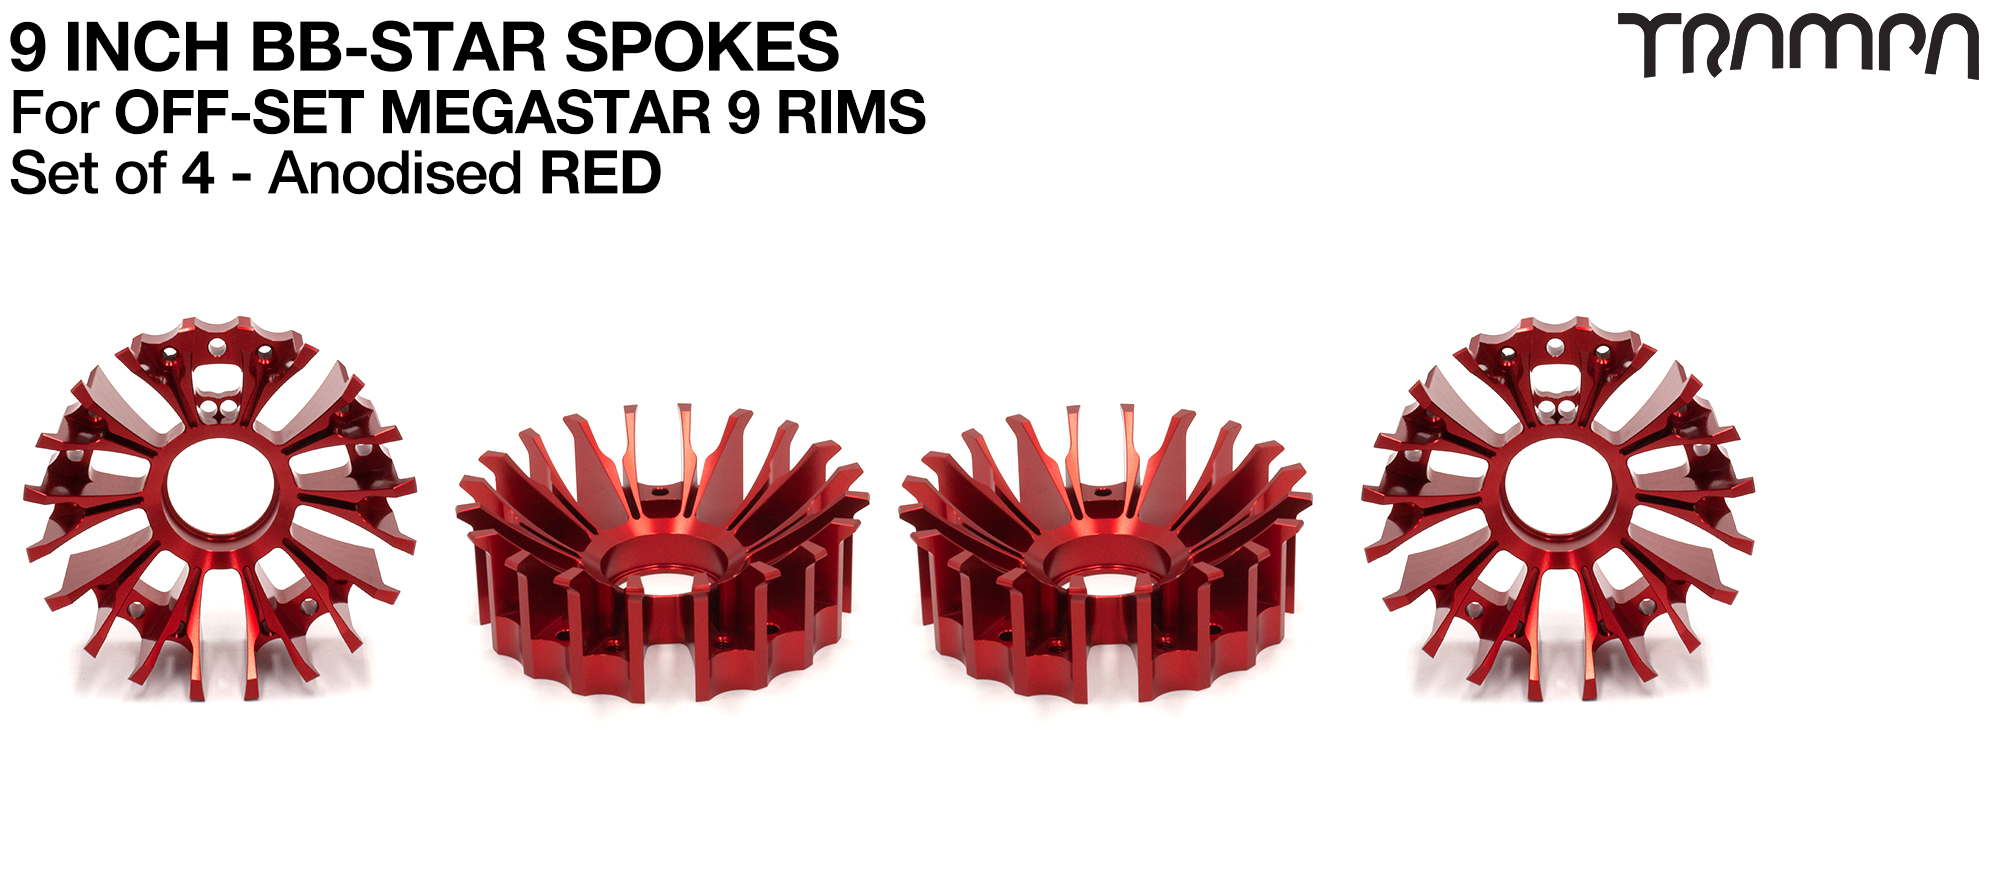 BBStar Spoke for SUPERSTAR or any size MEGASTAR rims - Extruded T6 Aluminium Heat treated & CNC Precision milled -  RED